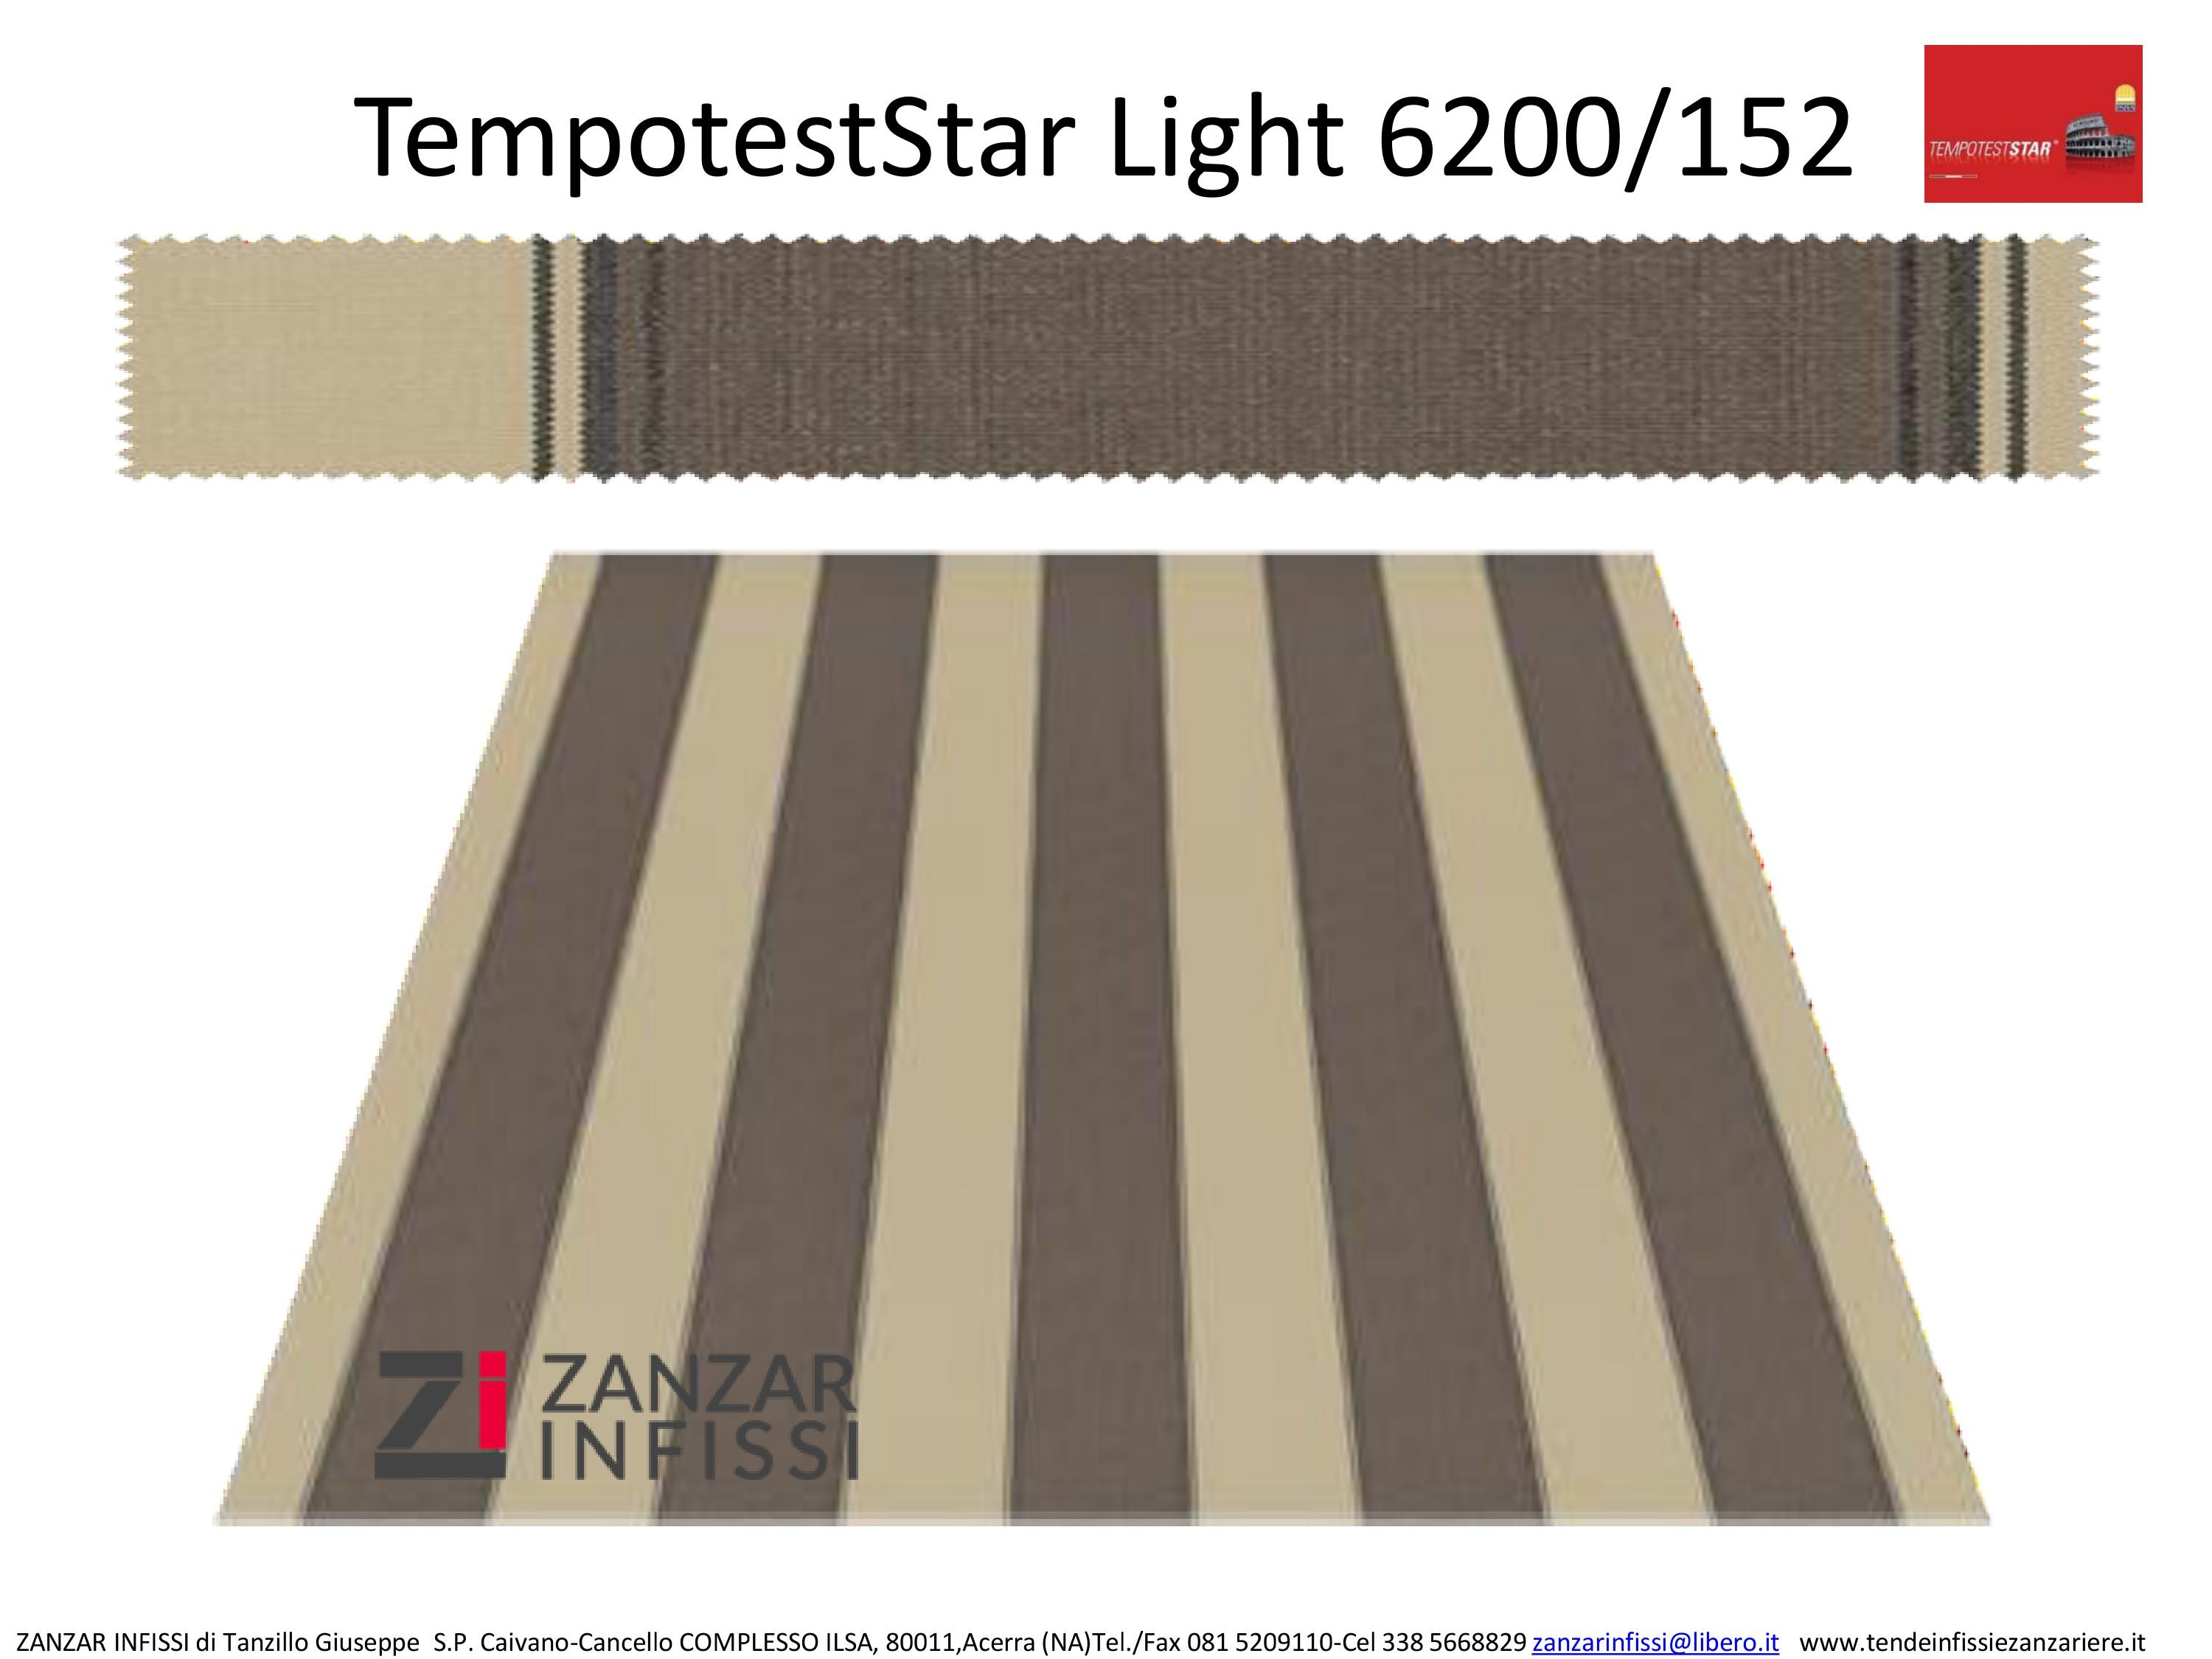 Tempotest star light 6200/152